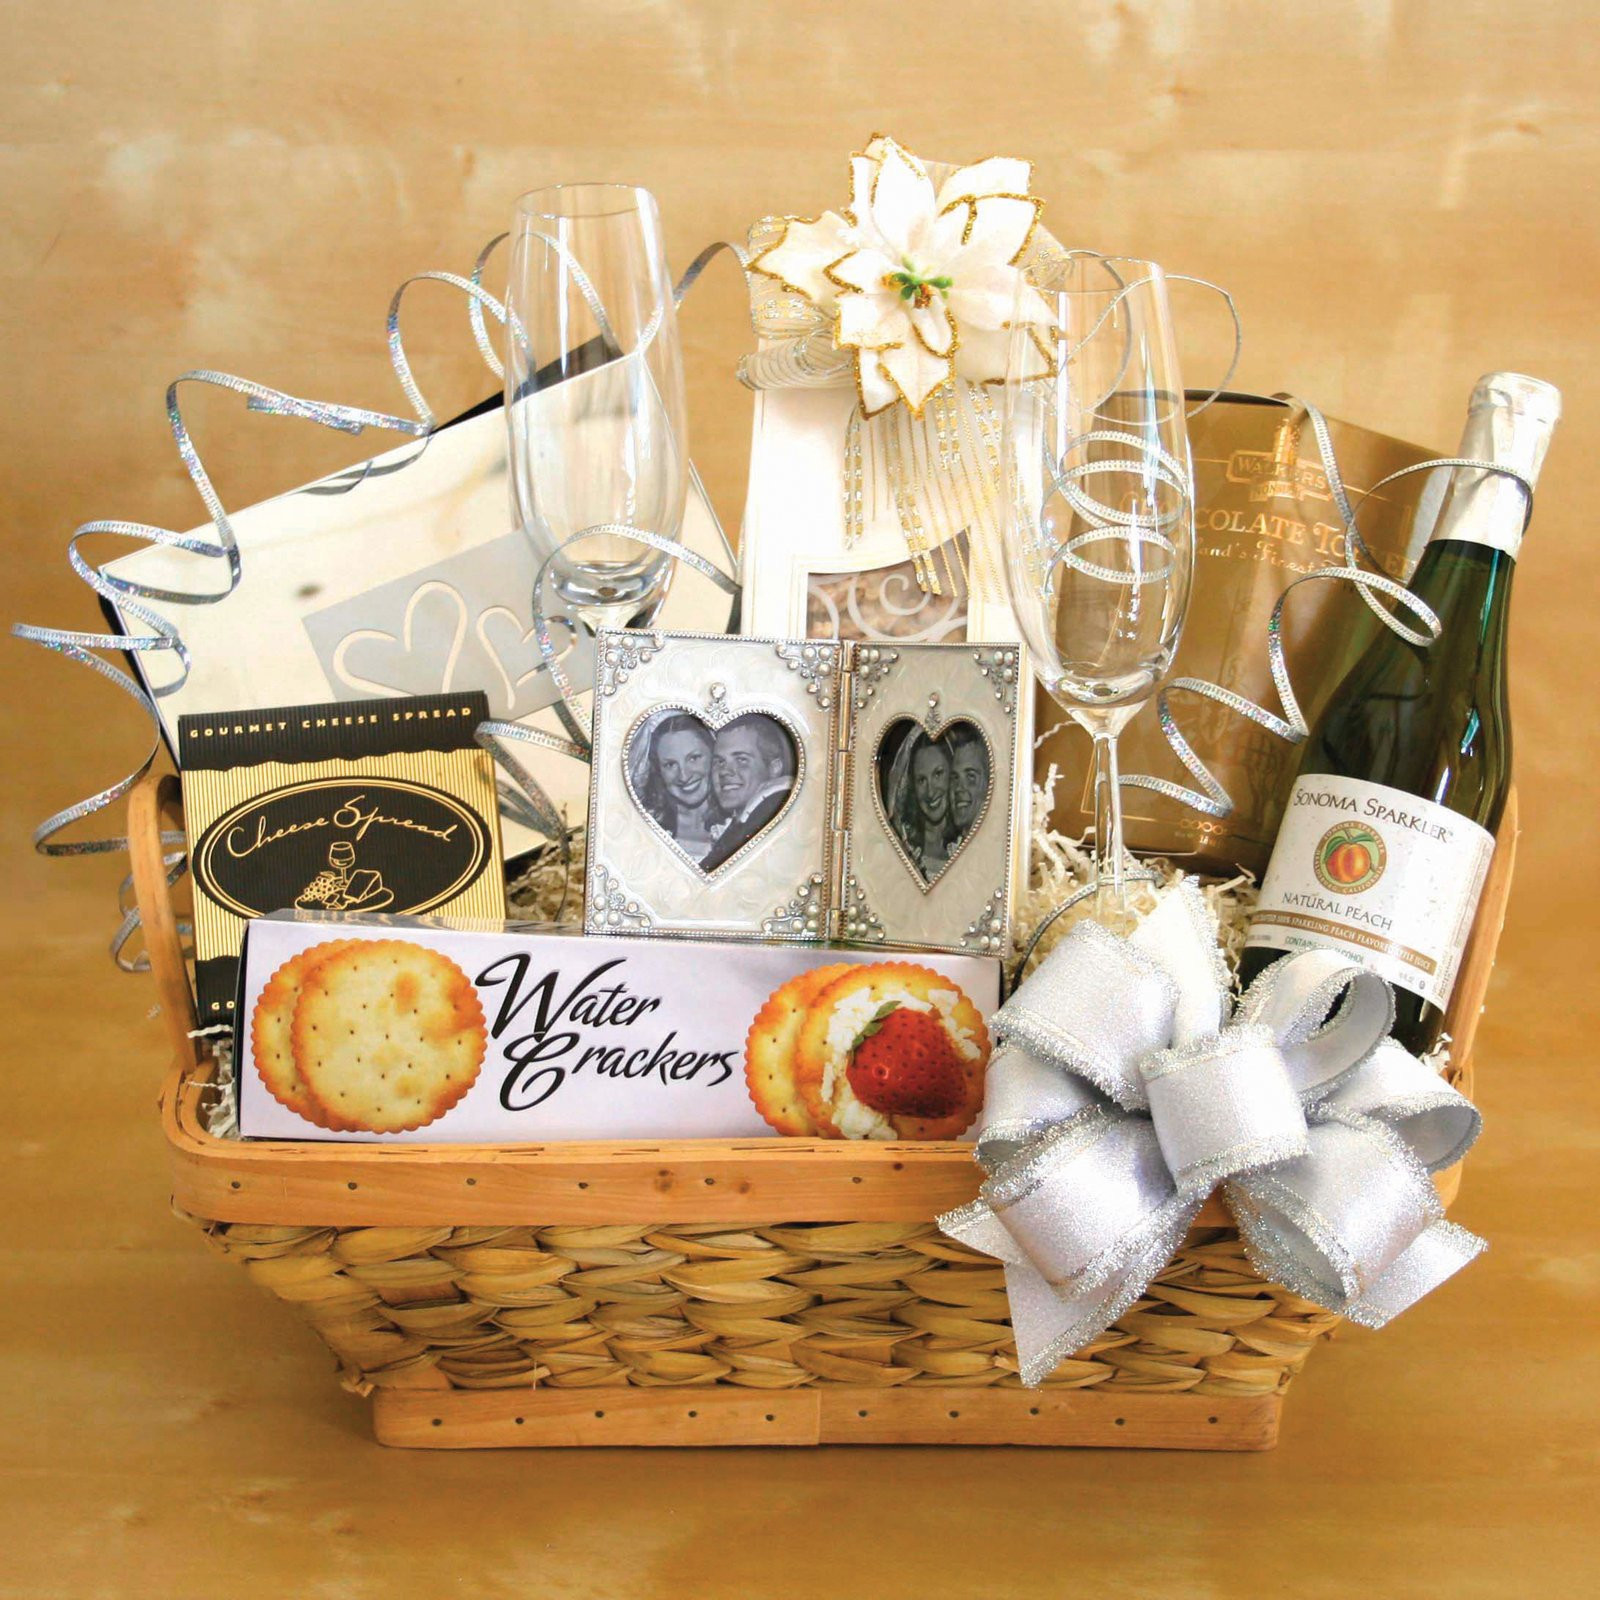 Best ideas about Ideas For A Wedding Gift . Save or Pin Simple Wedding Gifts Now.